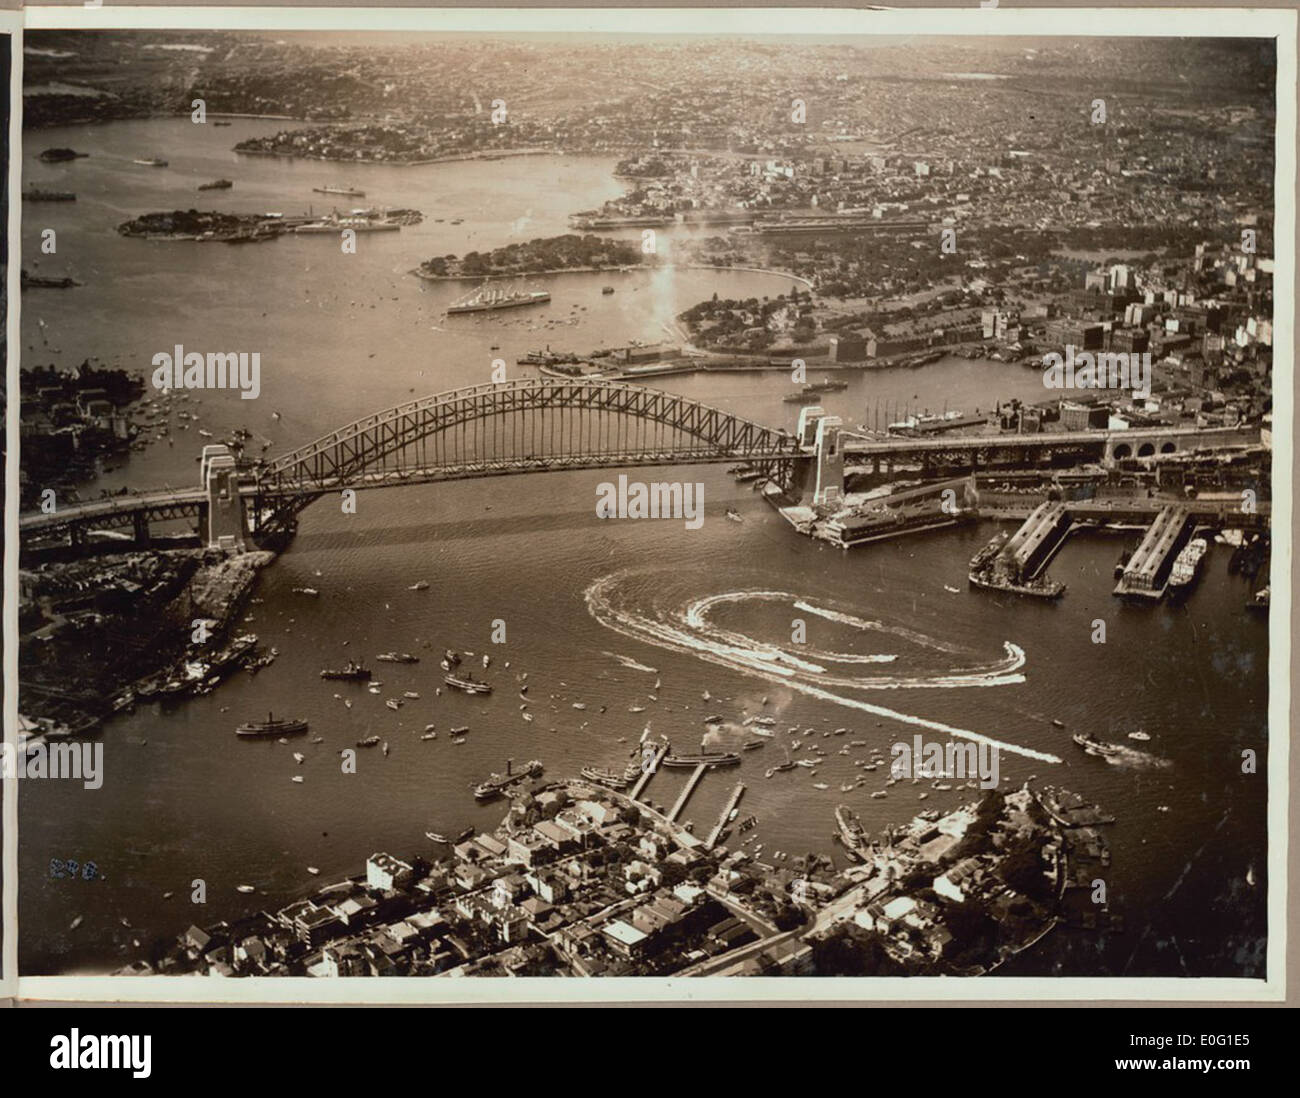 Aerial view of the speed boat display after the official opening celebrations of the Sydney Harbour Bridge, 19 March, 1932 - Stock Image